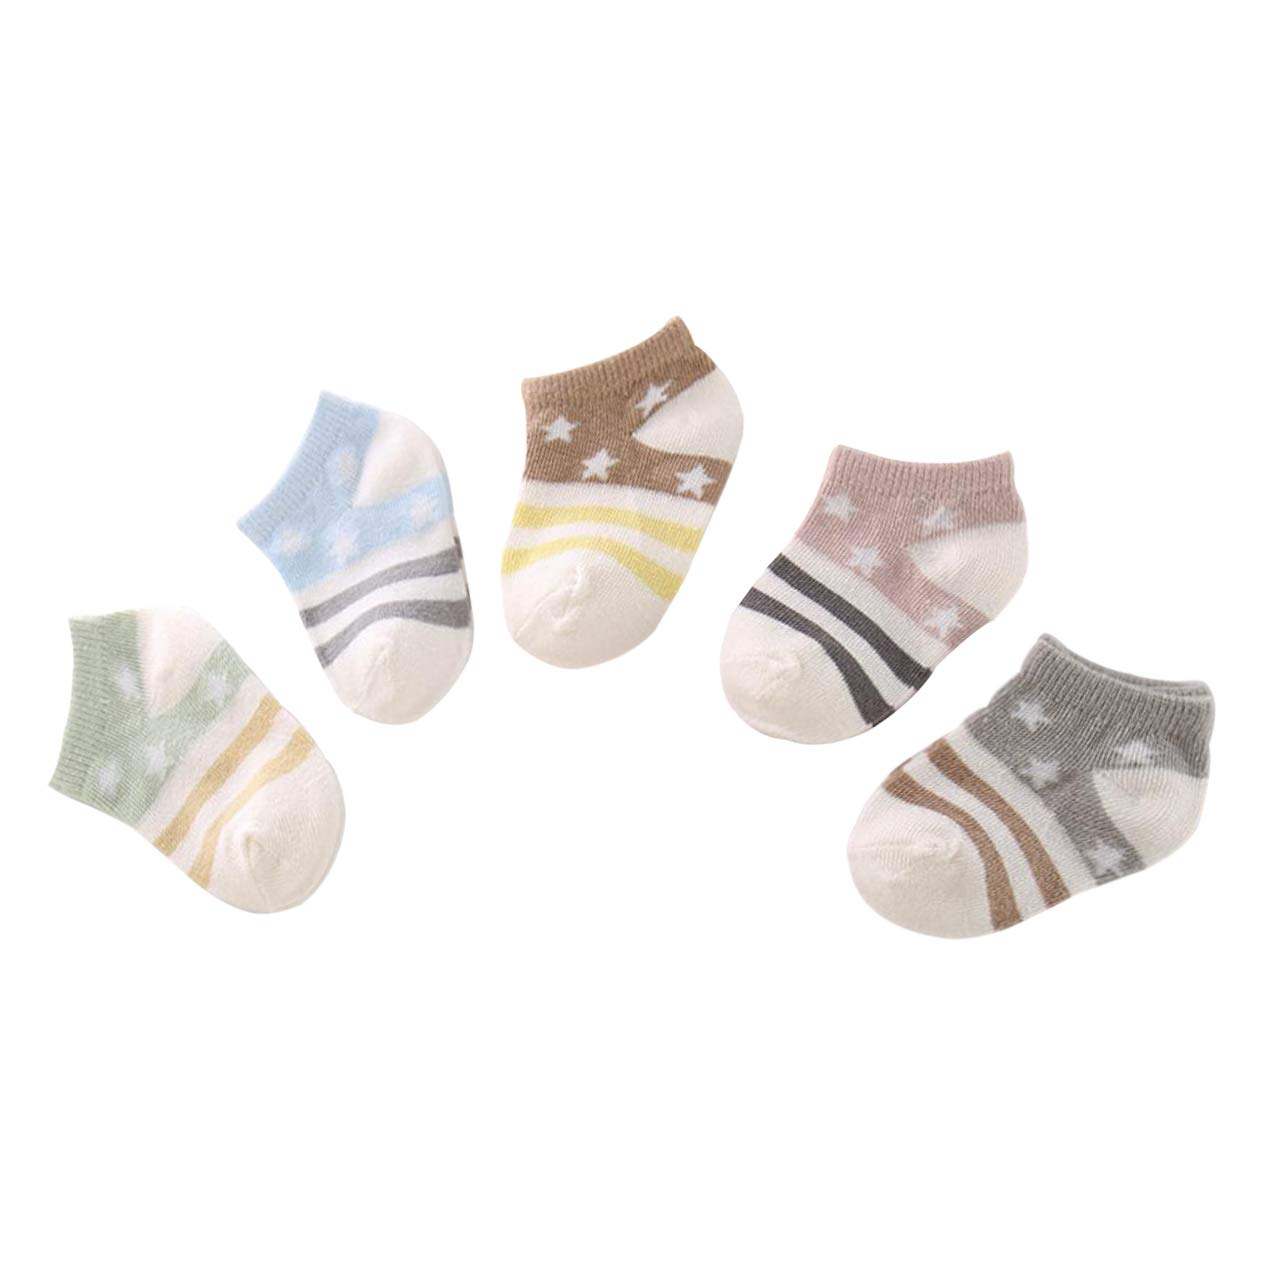 DEBAIJIA 5 Pairs Set Baby Coton Grip Ankle Socks Low Cut Invisible Short Socks for Toddler Kids 0-5 Years Old Soft Breathable Boys Girls Socks for Spring Summer Autum